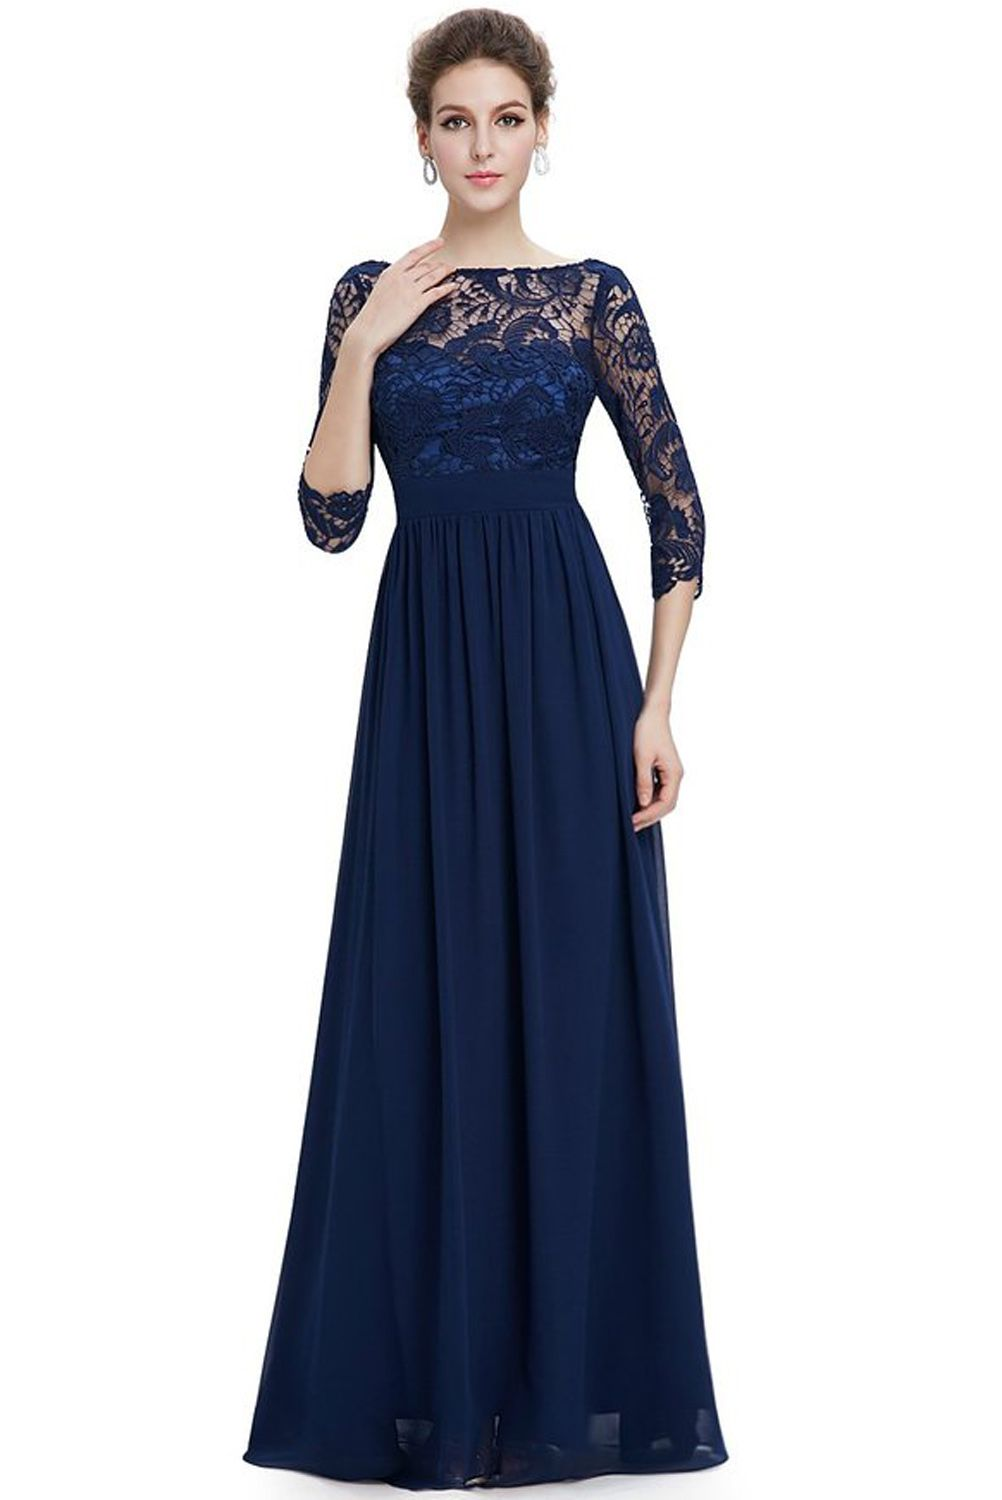 36e23cec49 this stunning evening dress features a figure flattering ruched satin waist  and a 3/4 sleeve lace bust. the formal floor length of the dress coupled  with ...